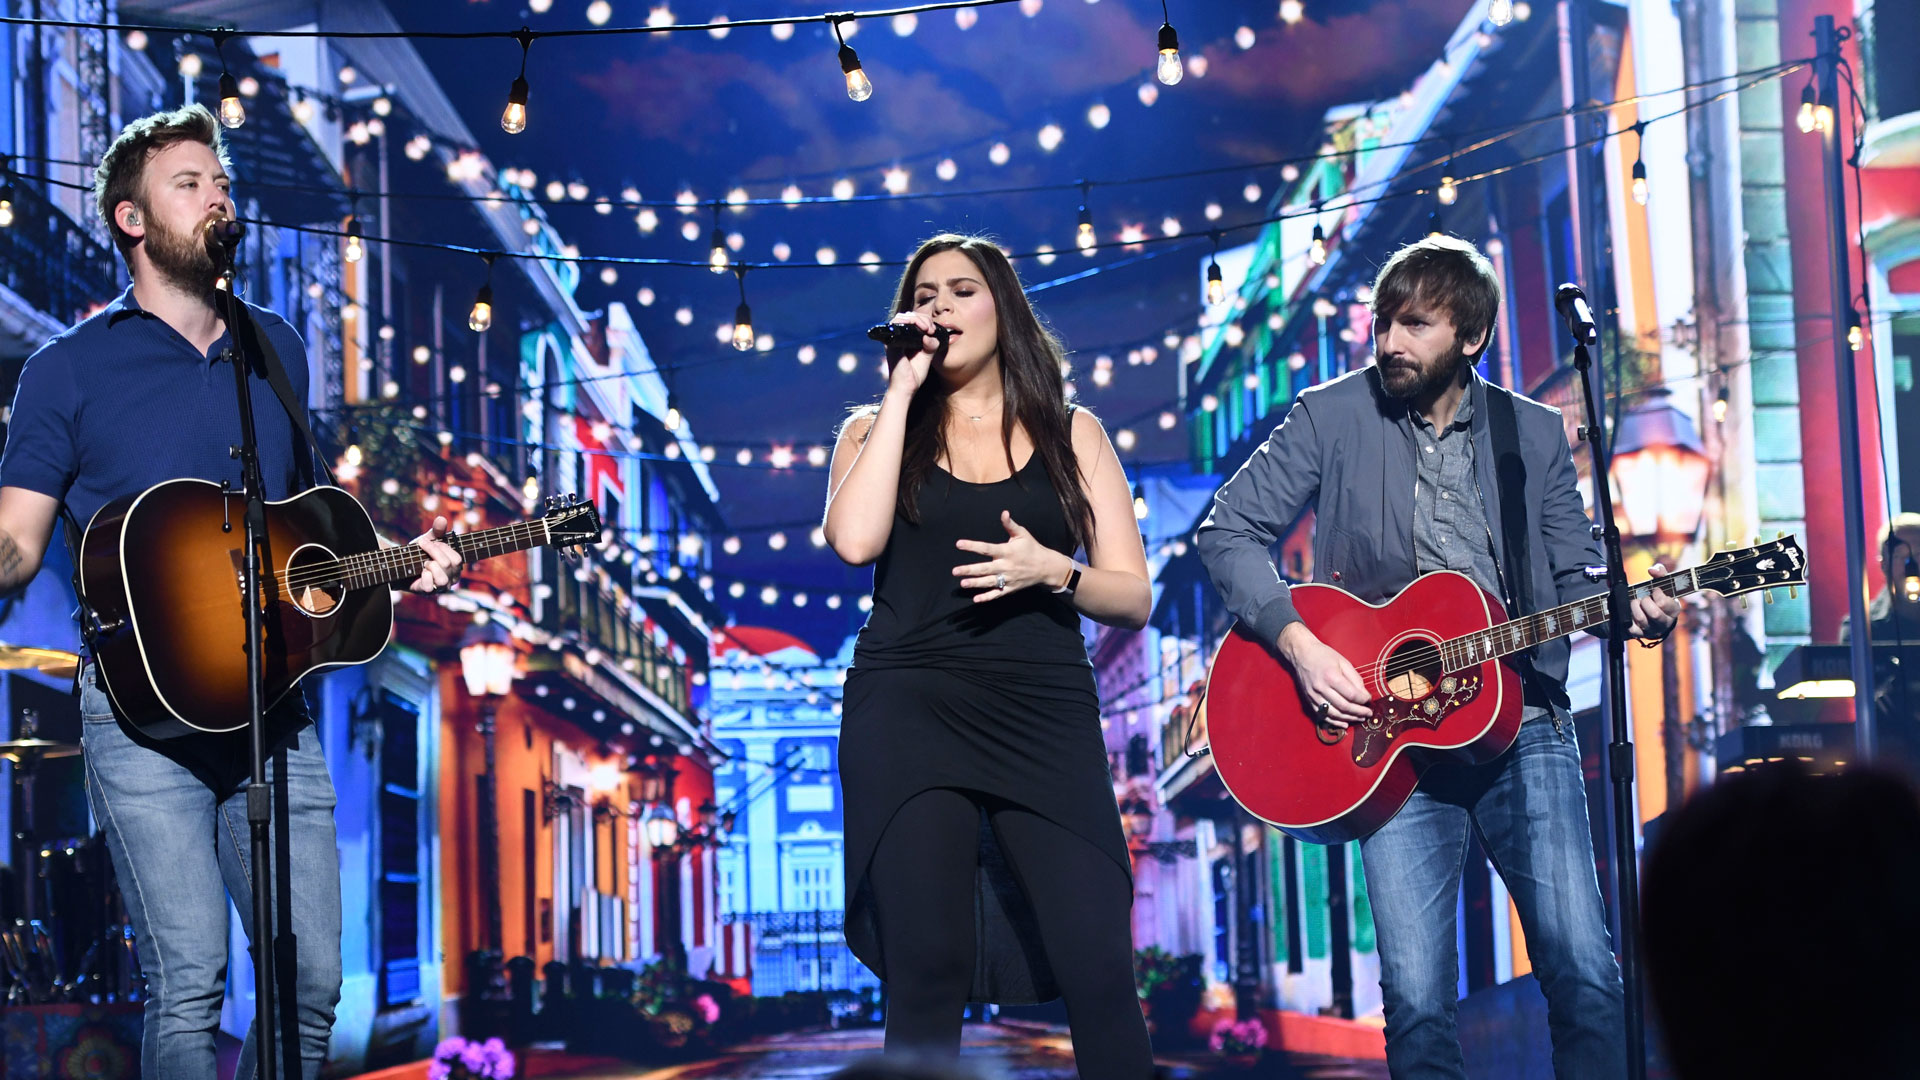 Lady Antebellum rehearse amidst a slew of stringed lights on stage set for the 53rd ACM Awards.